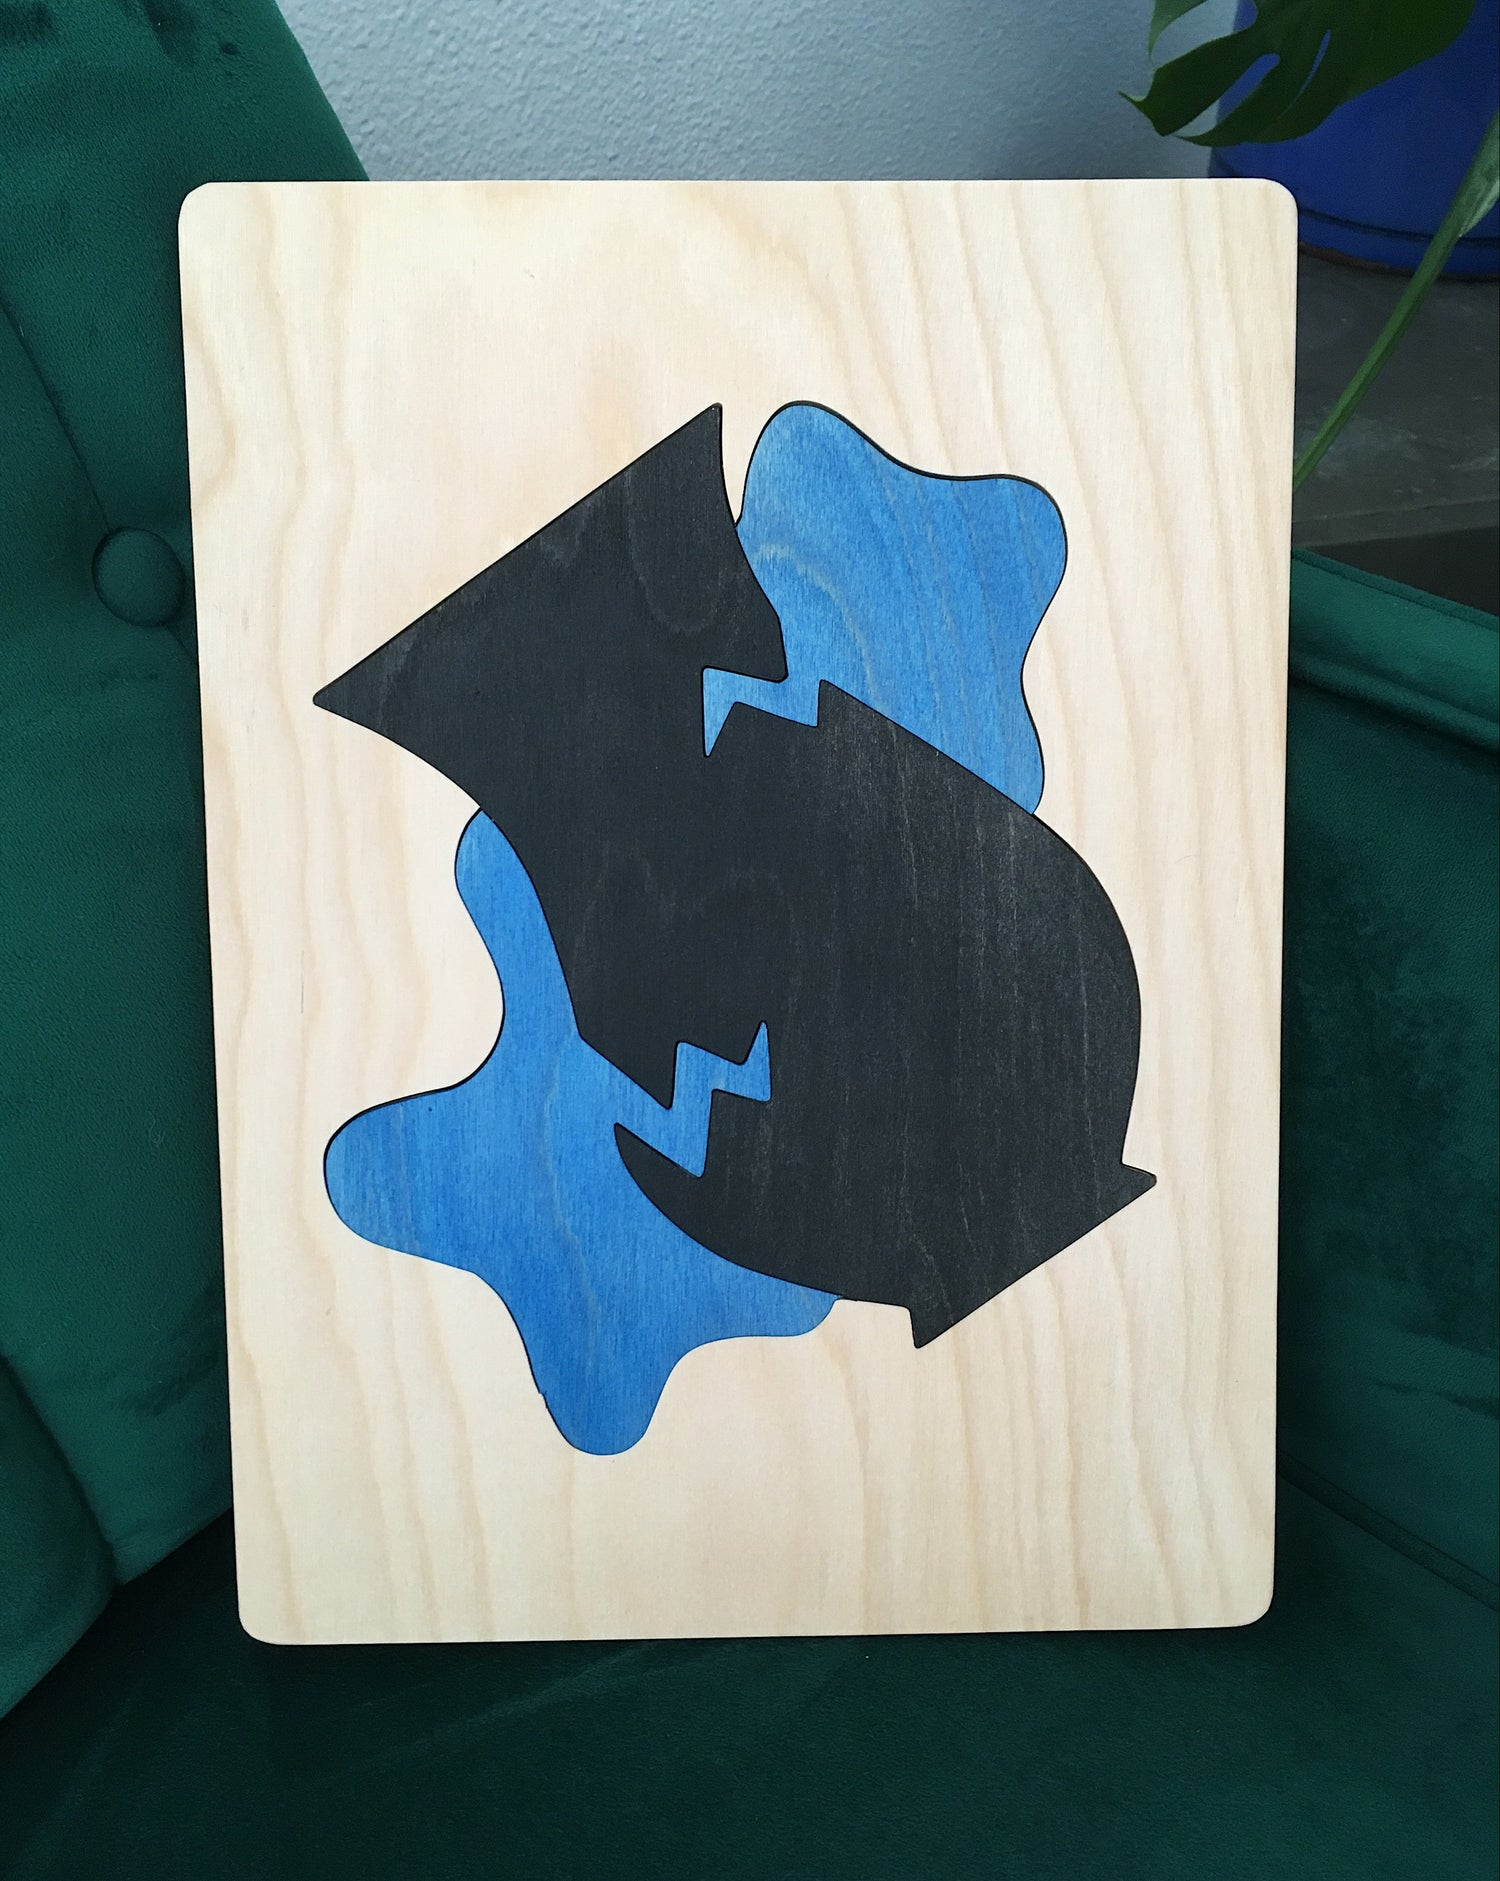 Image of Broken Vessel Wooden Jigsaw Puzzle